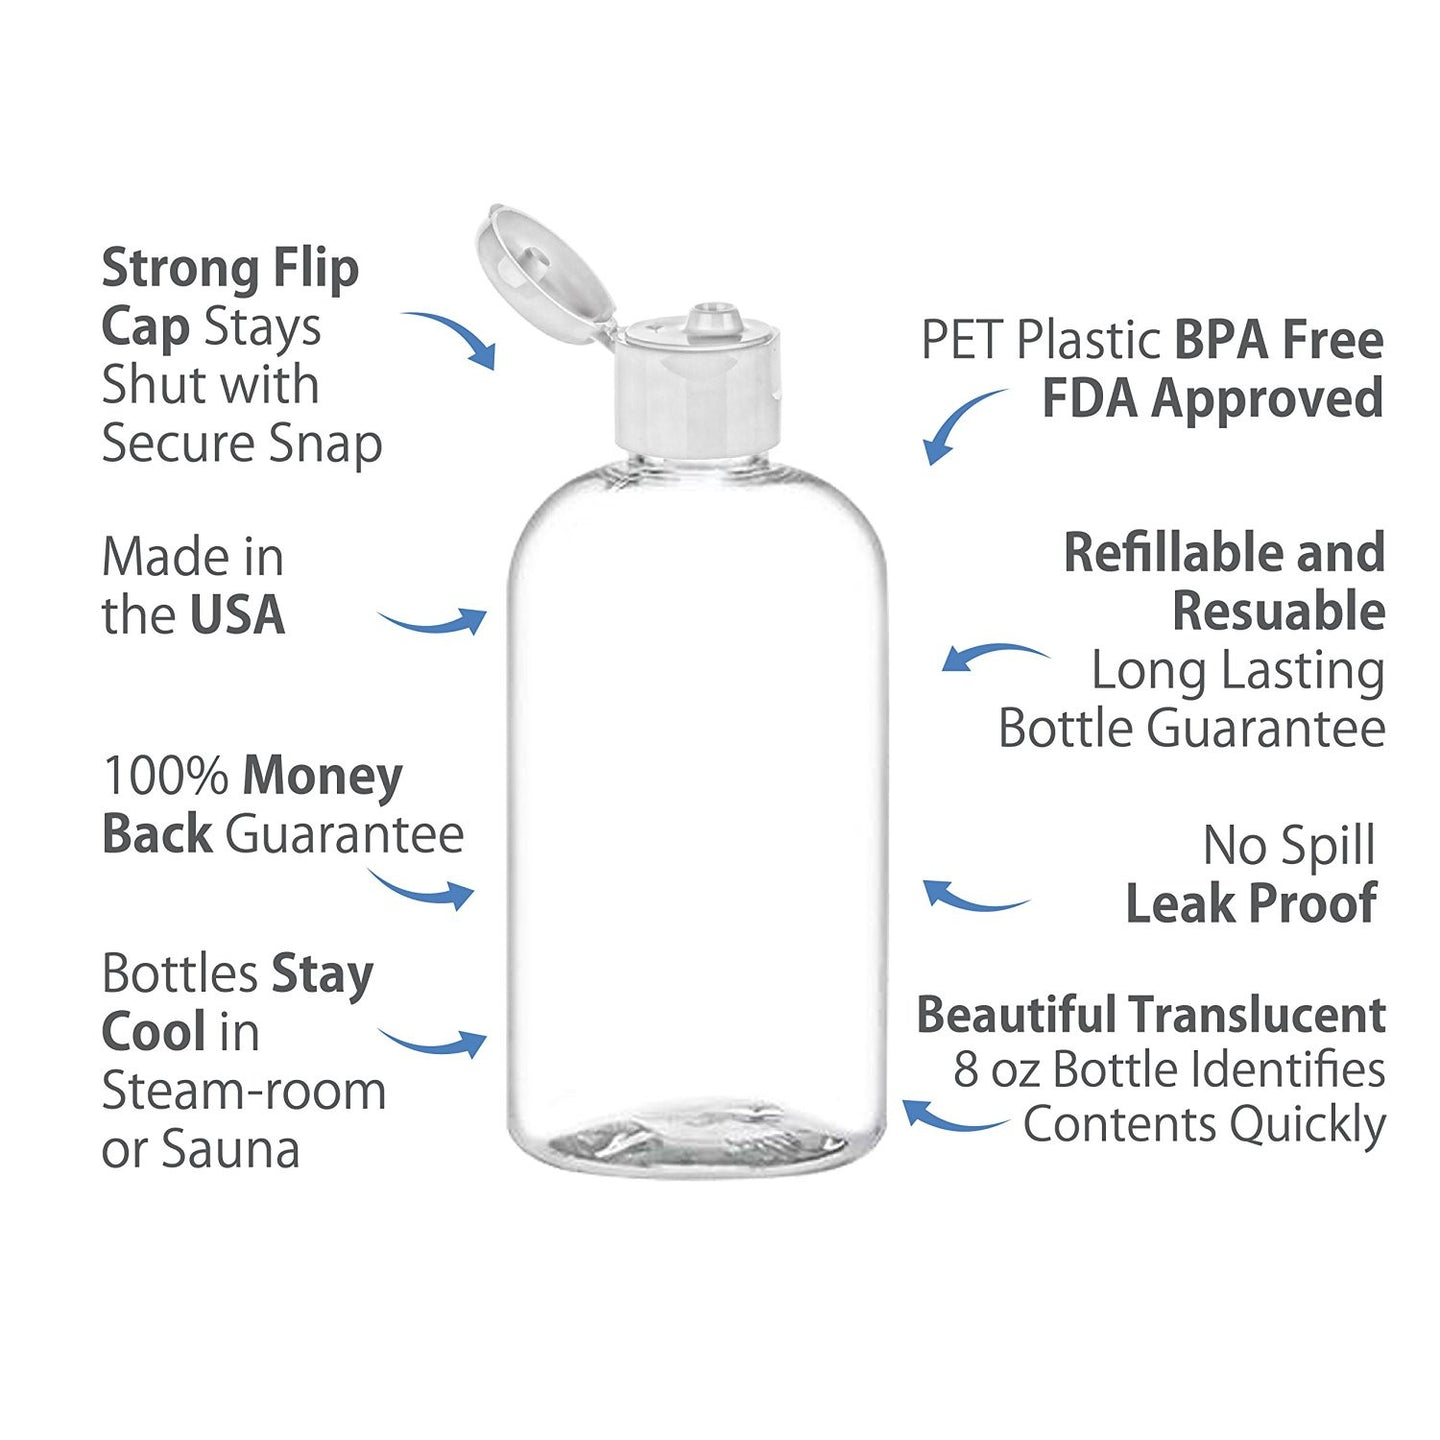 MoYo Natural Labs 8 oz Boston Round Travel Bottles, Empty Travel Containers with Flip Caps, BPA Free PET Plastic Refillable Toiletry/Cosmetic Bottle (Pack of 6, Clear)